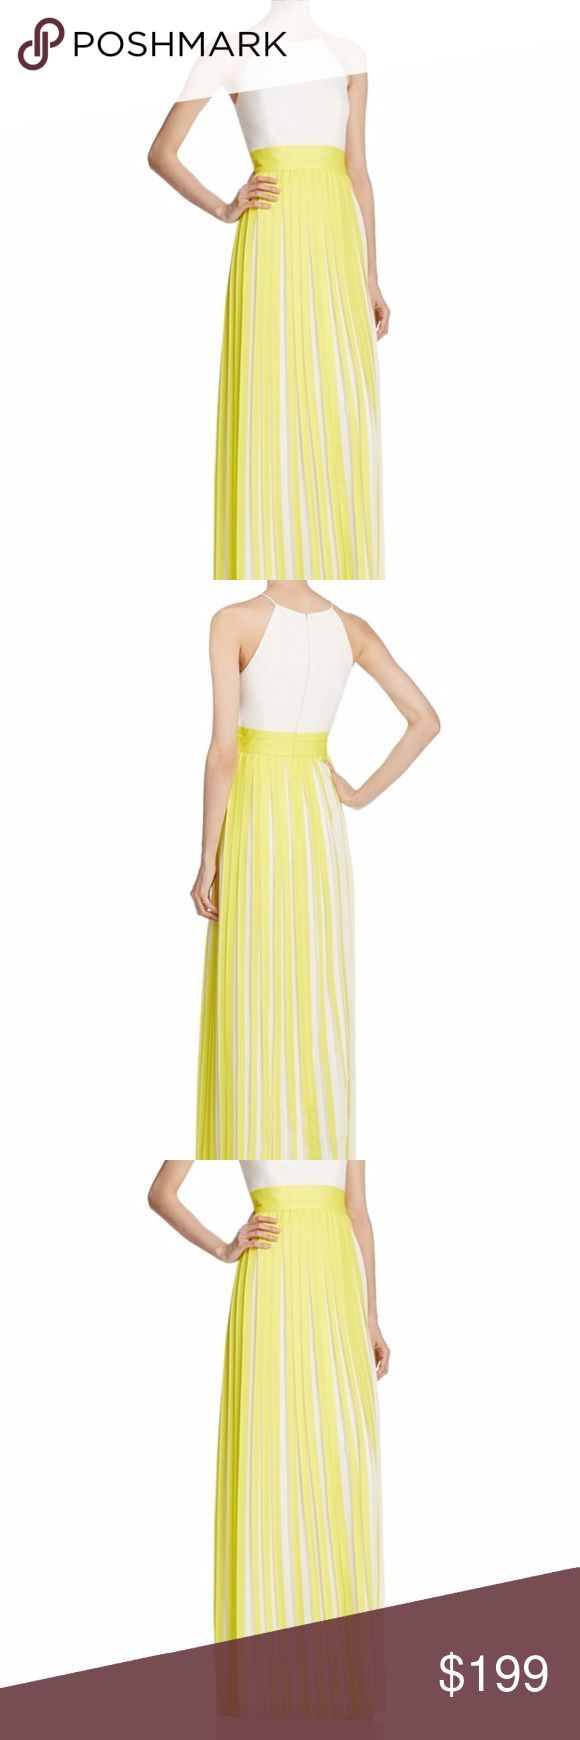 Aidan Mattox Pleated Brocatelle Dress Gown Lemon Show off a confident radiance that only an impeccably styled Aidan Mattox masterpiece can bring and bloom in dazzling beauty and luminous glow in this fascinatingly vibrant Aidan Mattox dress. Gorgeously fitted with sculpting seams along its immaculate bodice, this lovely piece presents a high halter neckline supported with flimsy straps that connects to its racerback. Embraced at the waist with triple bands for that cinched look, the A-line…